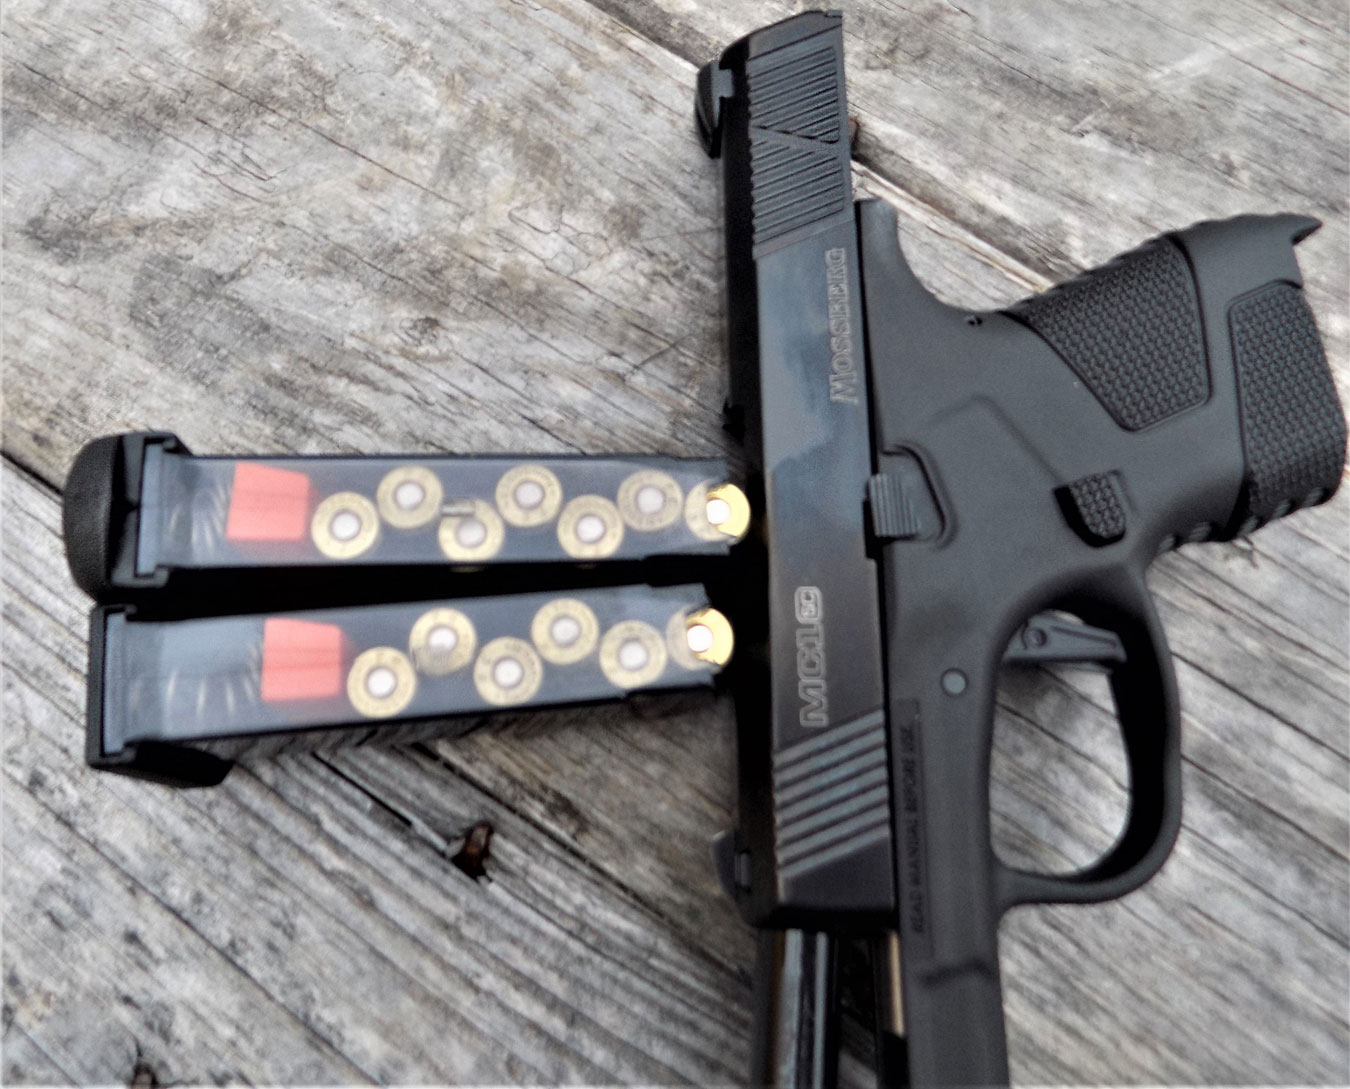 Mossberg MC1sc pistol with 6- and 7-round magazine